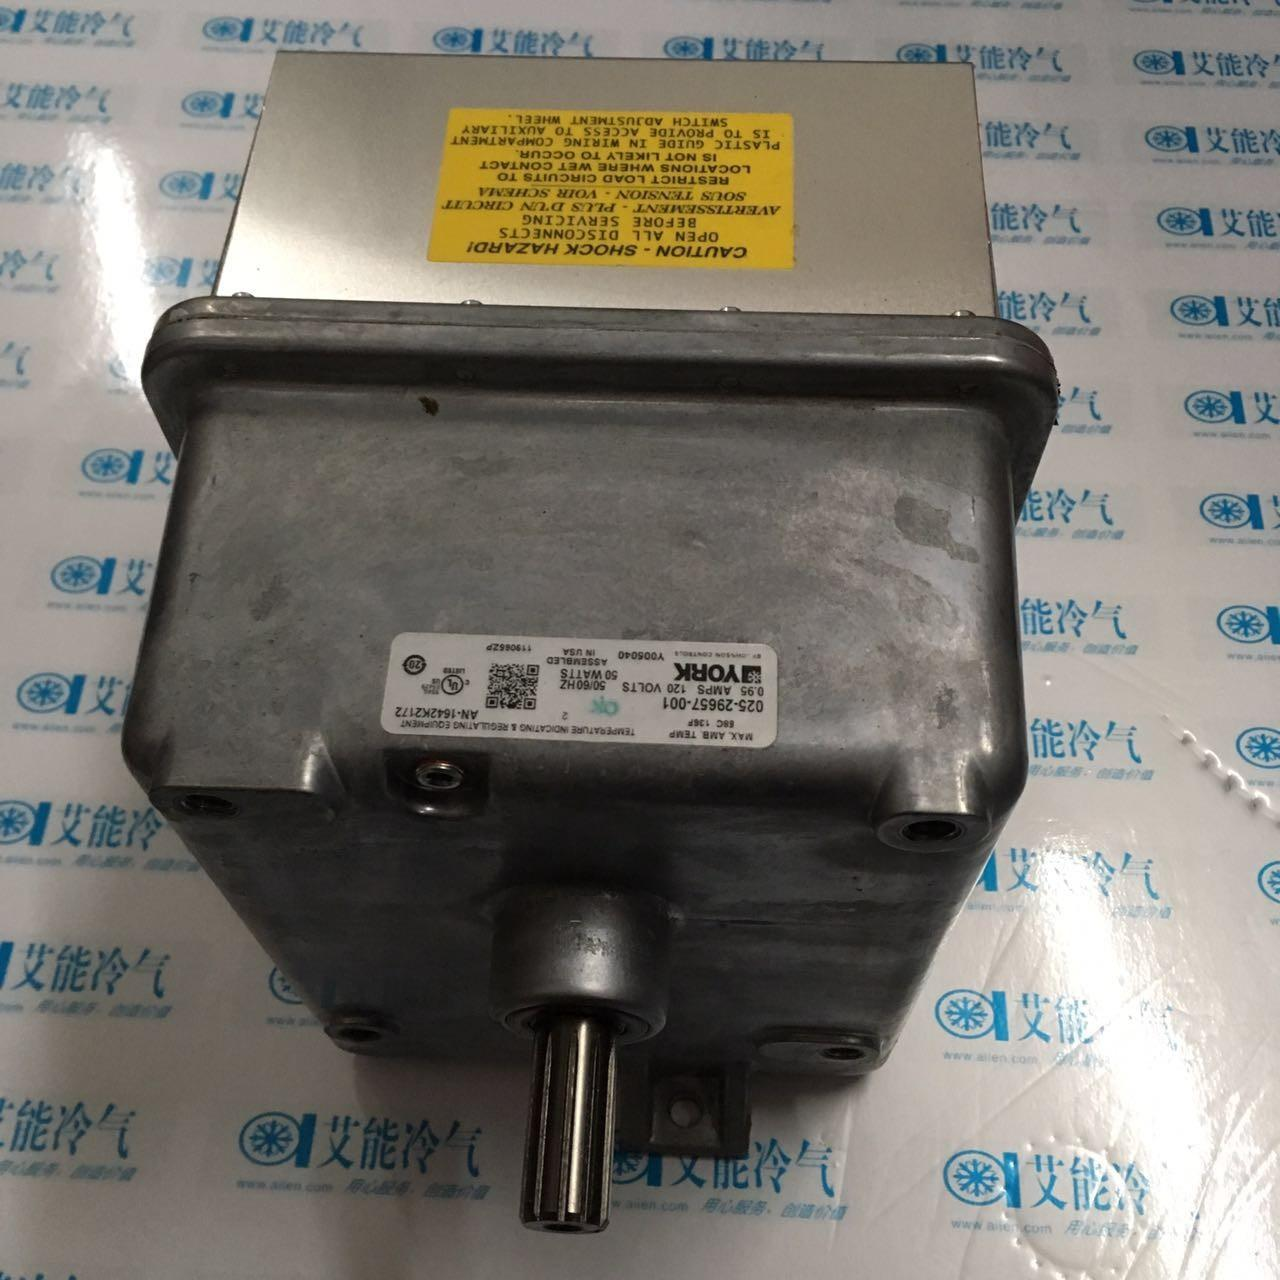 Quality YORK CHILLER ACTUATOR 371 49340 105 ACTUATOR 025-29657-001 for sale